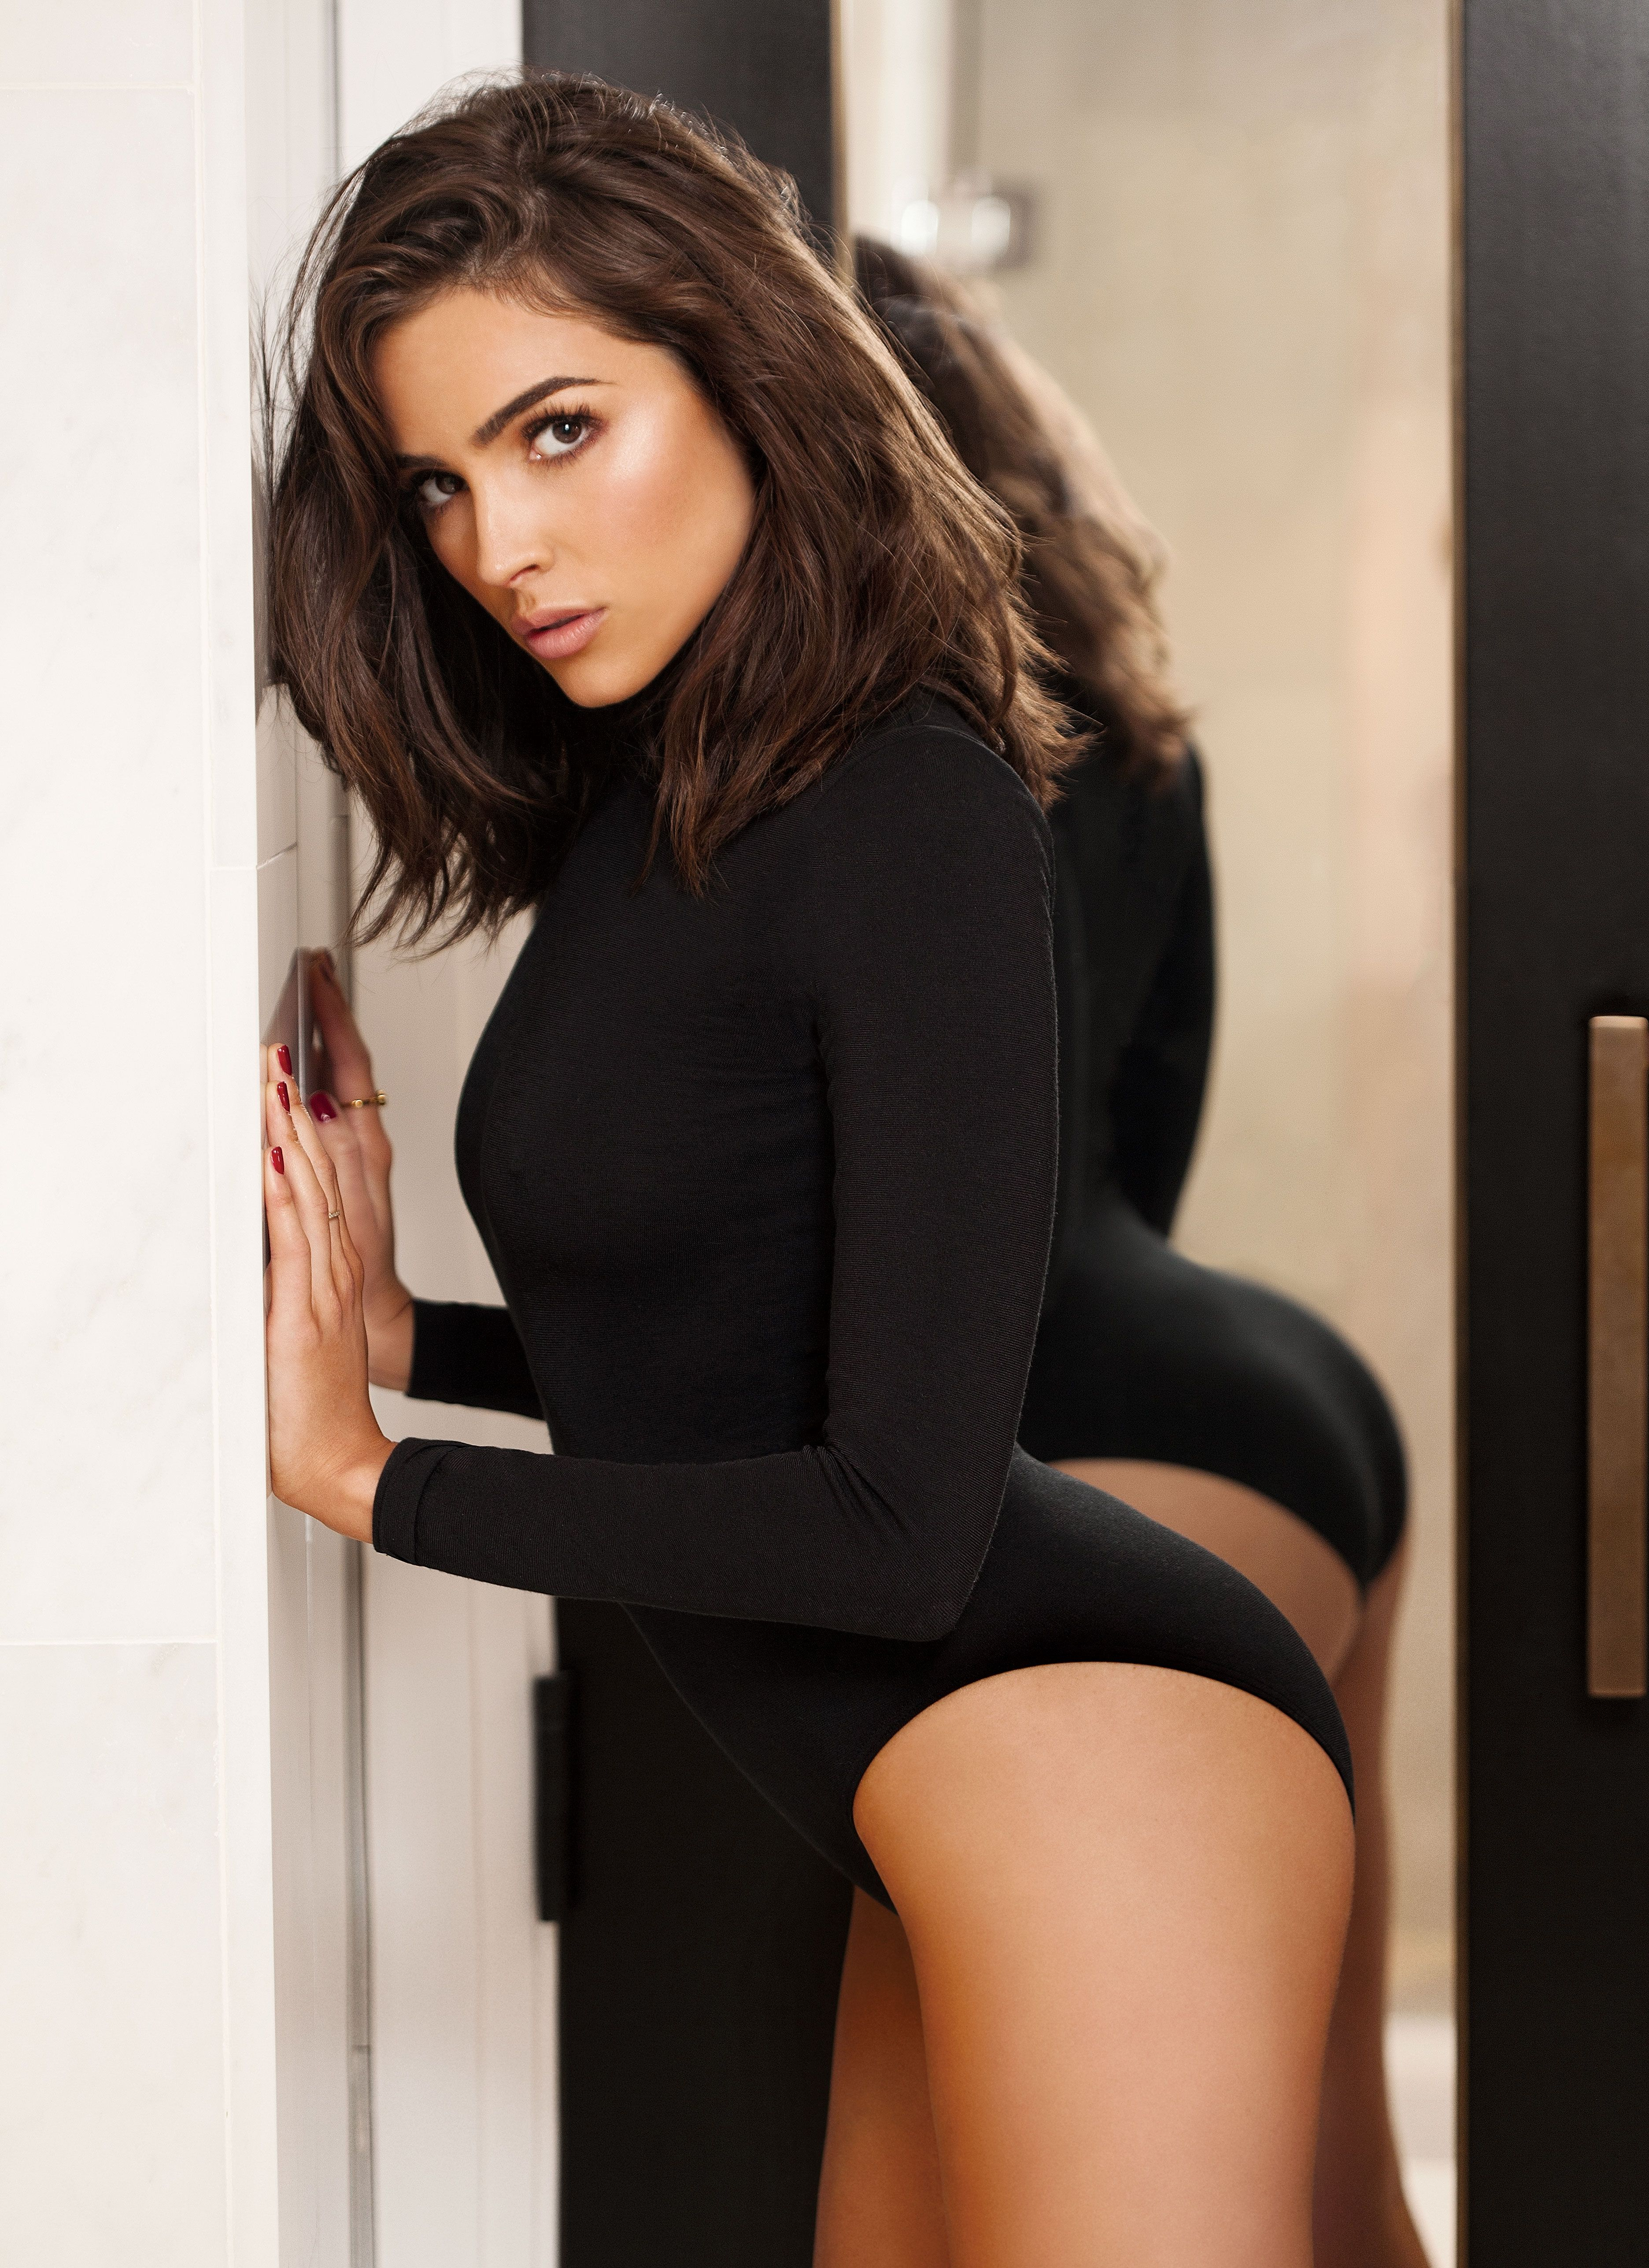 Pics Olivia Culpo nudes (79 photos), Sexy, Fappening, Feet, swimsuit 2018